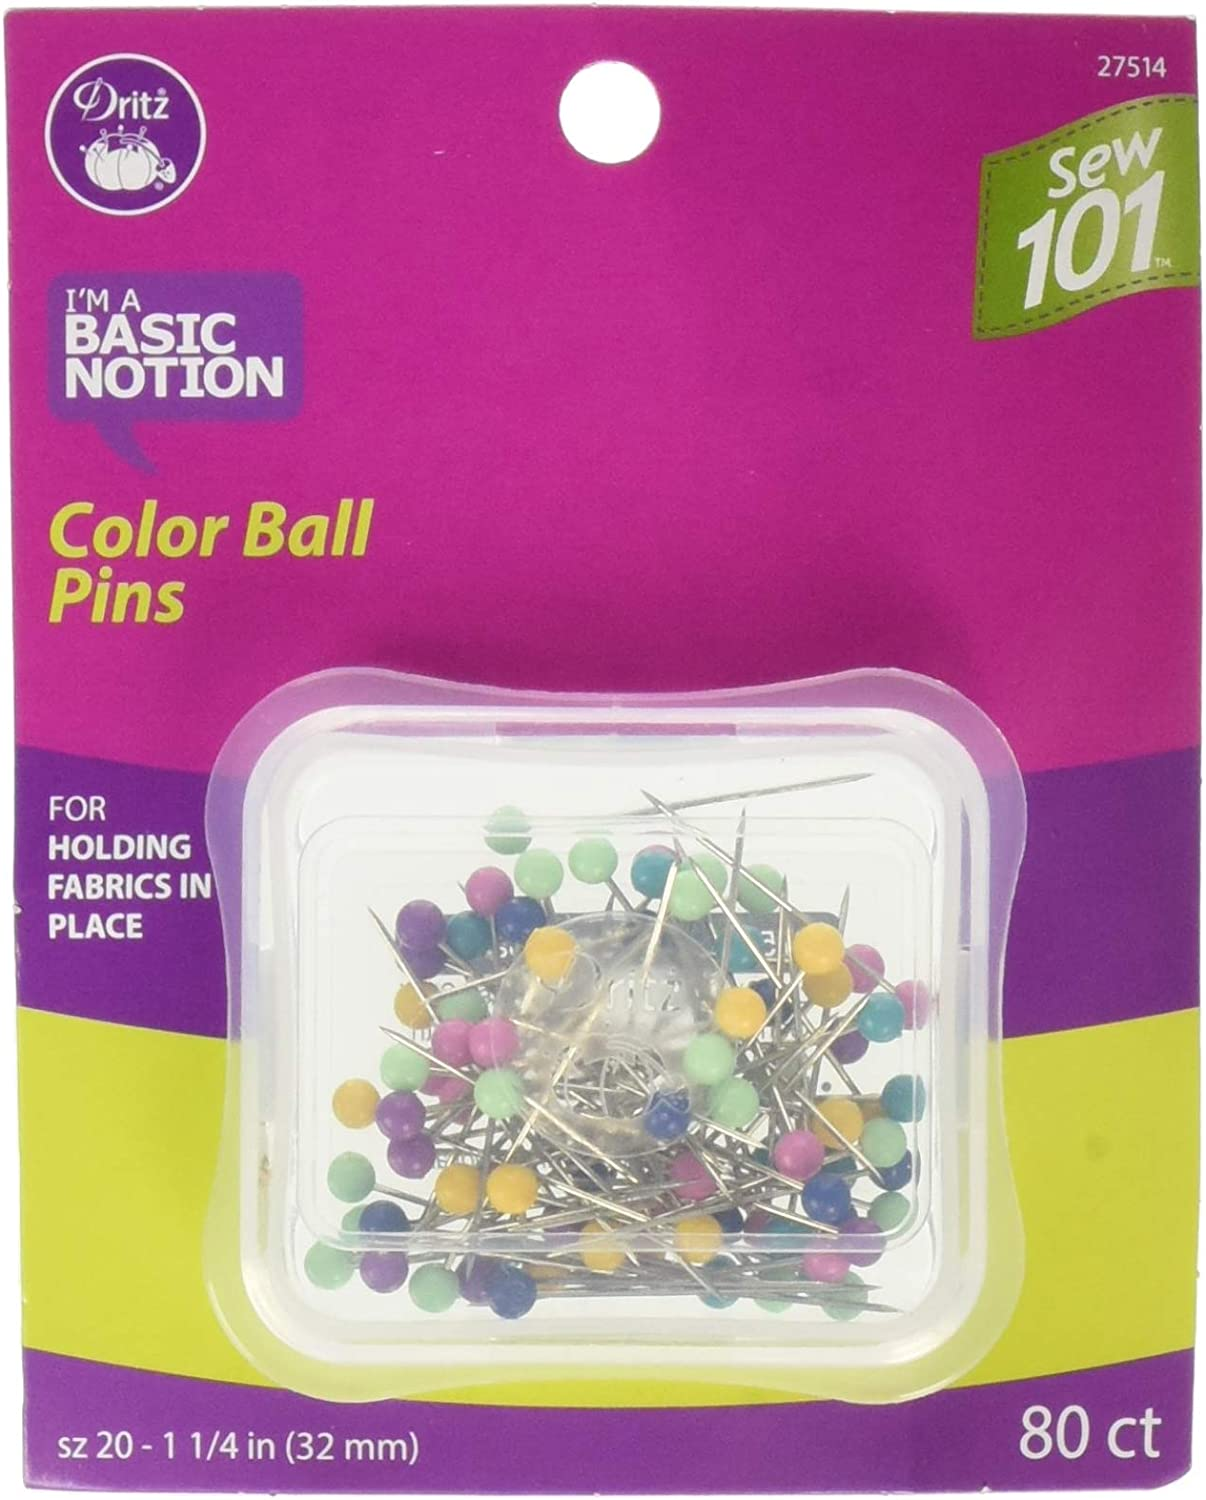 Dritz Color Ball Pins Assorted 80 We OFFer New product!! at cheap prices